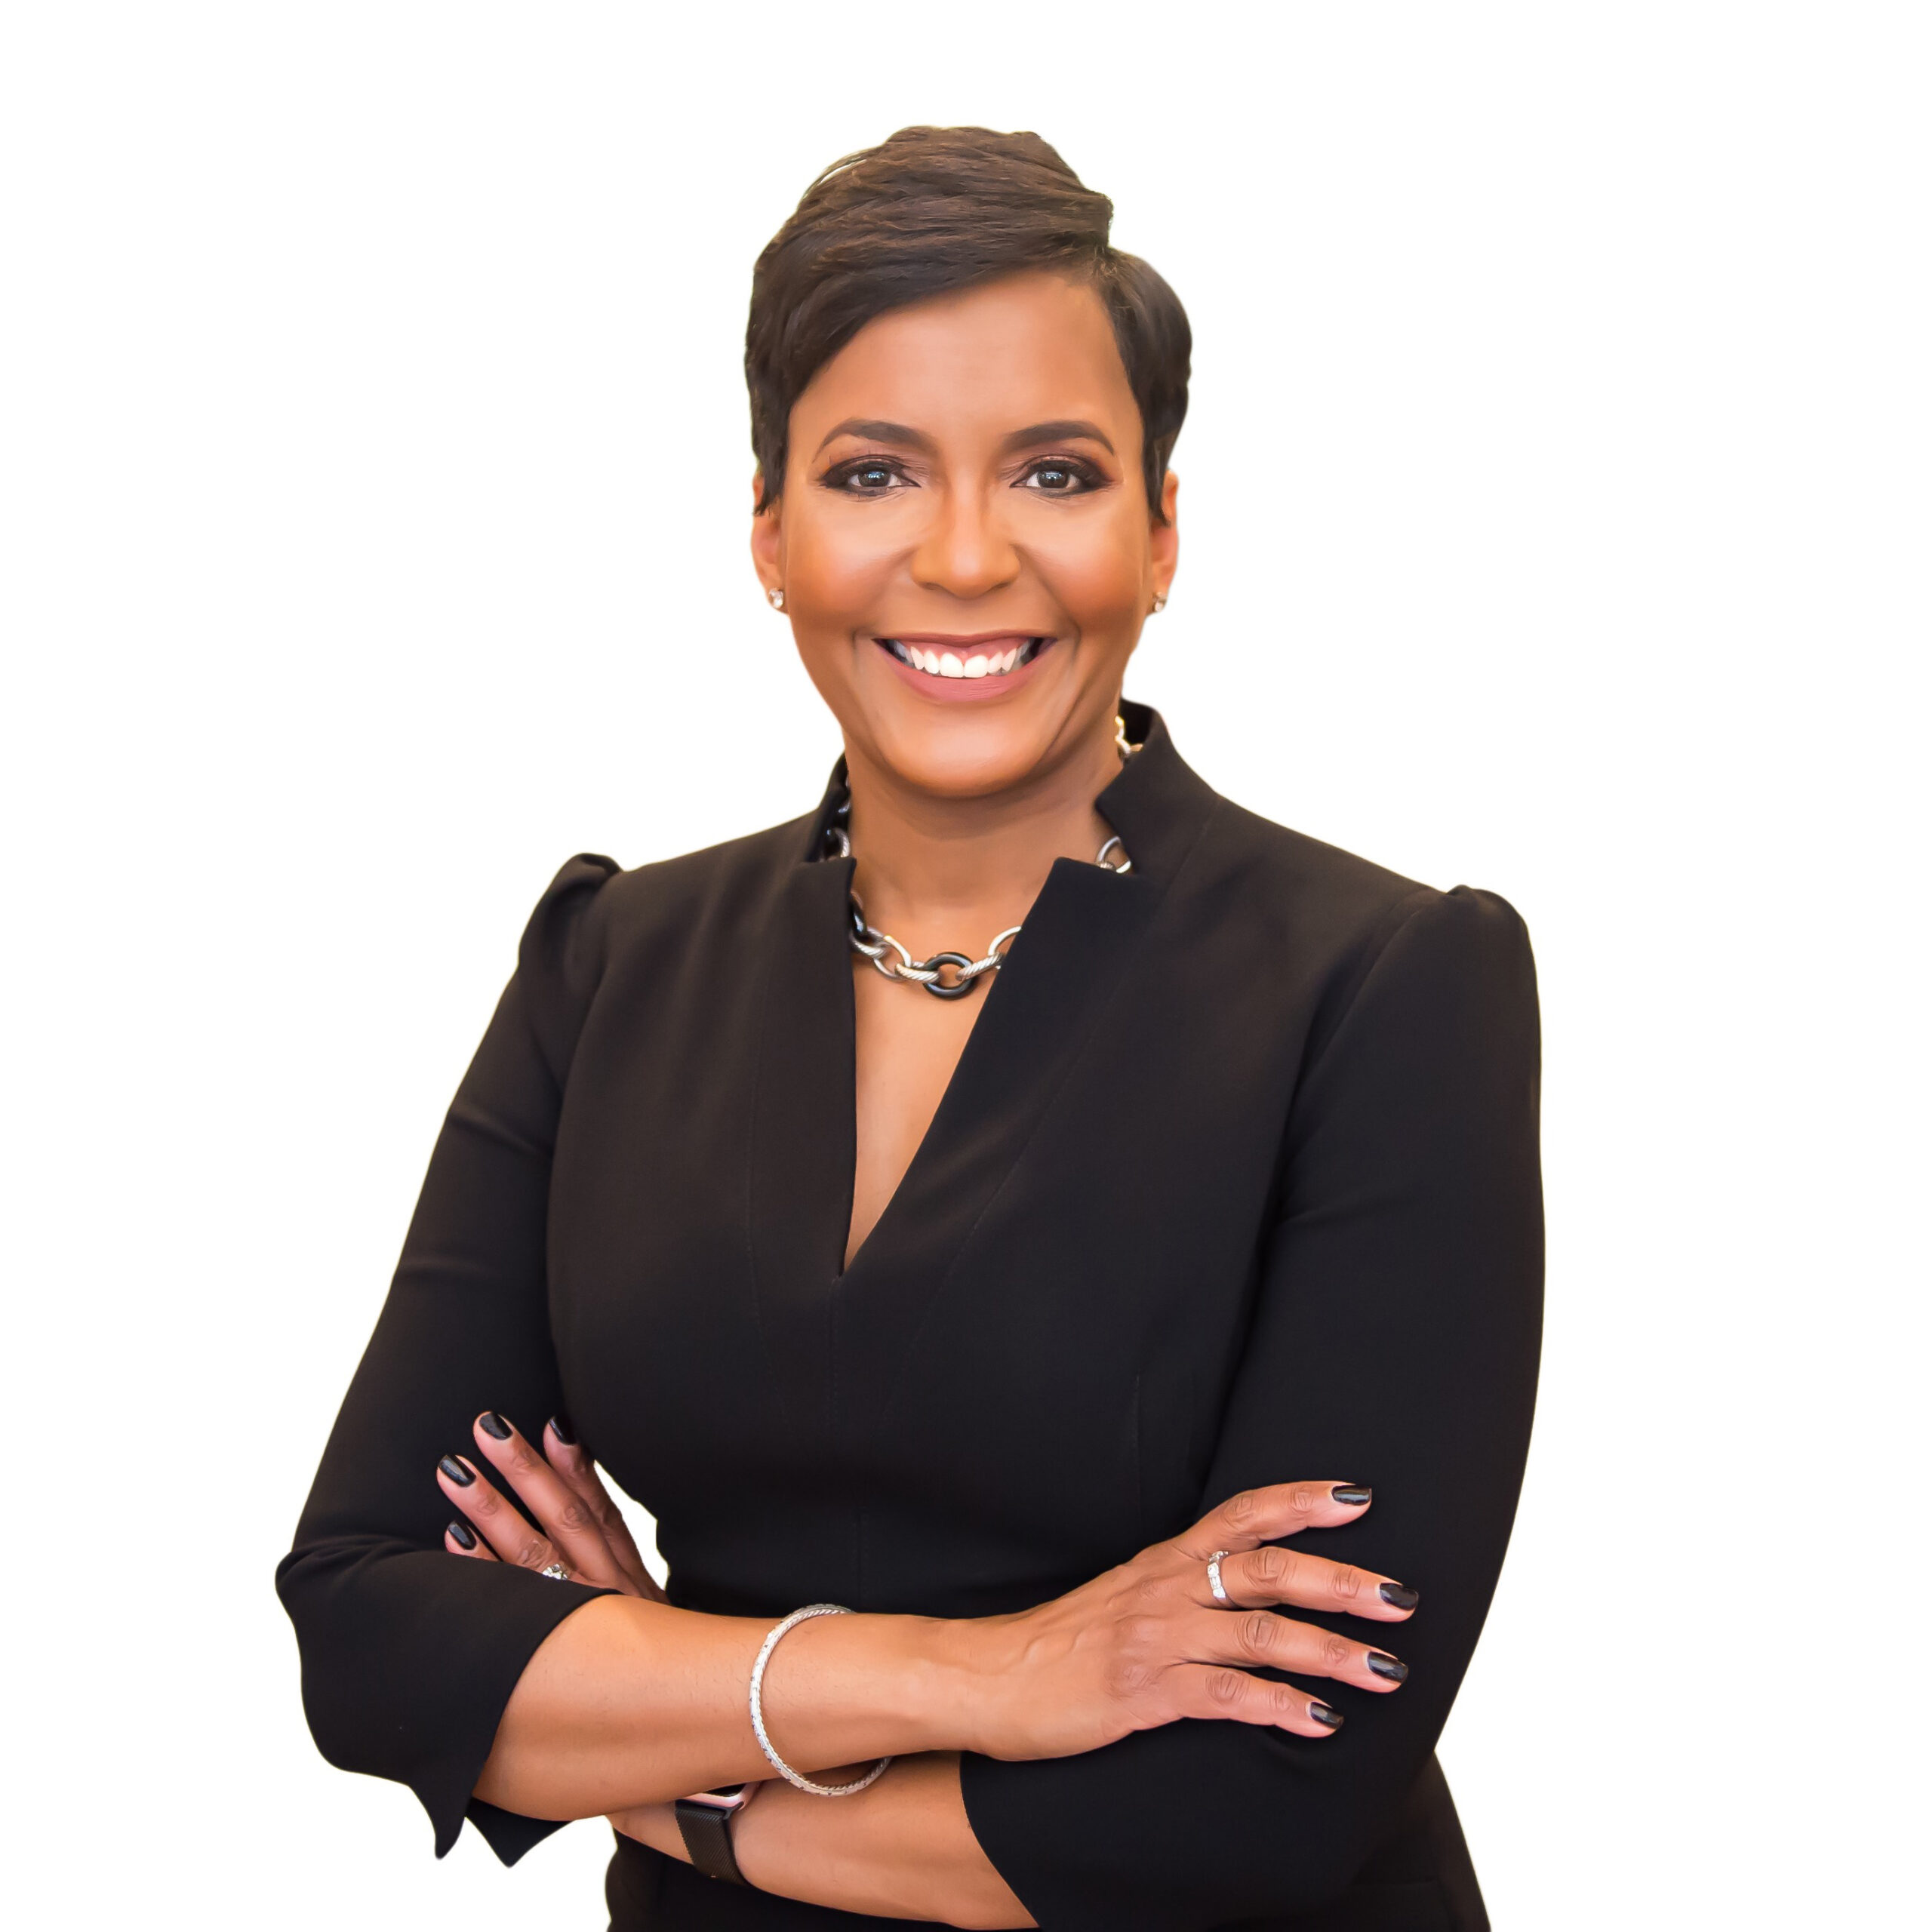 Mayor Keisha Lance Bottoms, 60th Mayor of the City of Atlanta